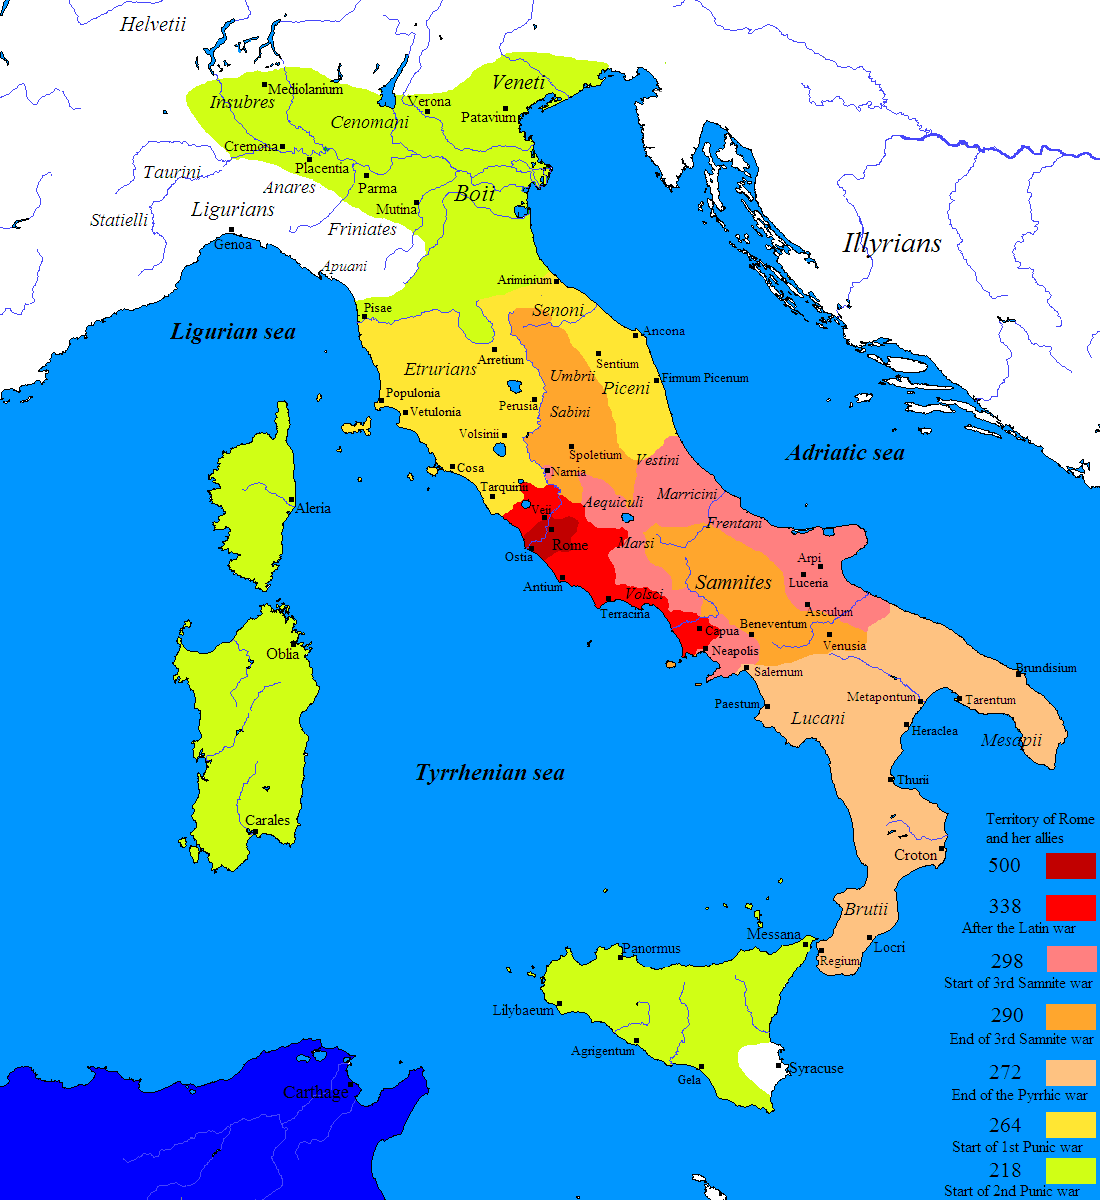 Mr.Guerriero's Blog: Ancient Rome: Maps and Geography